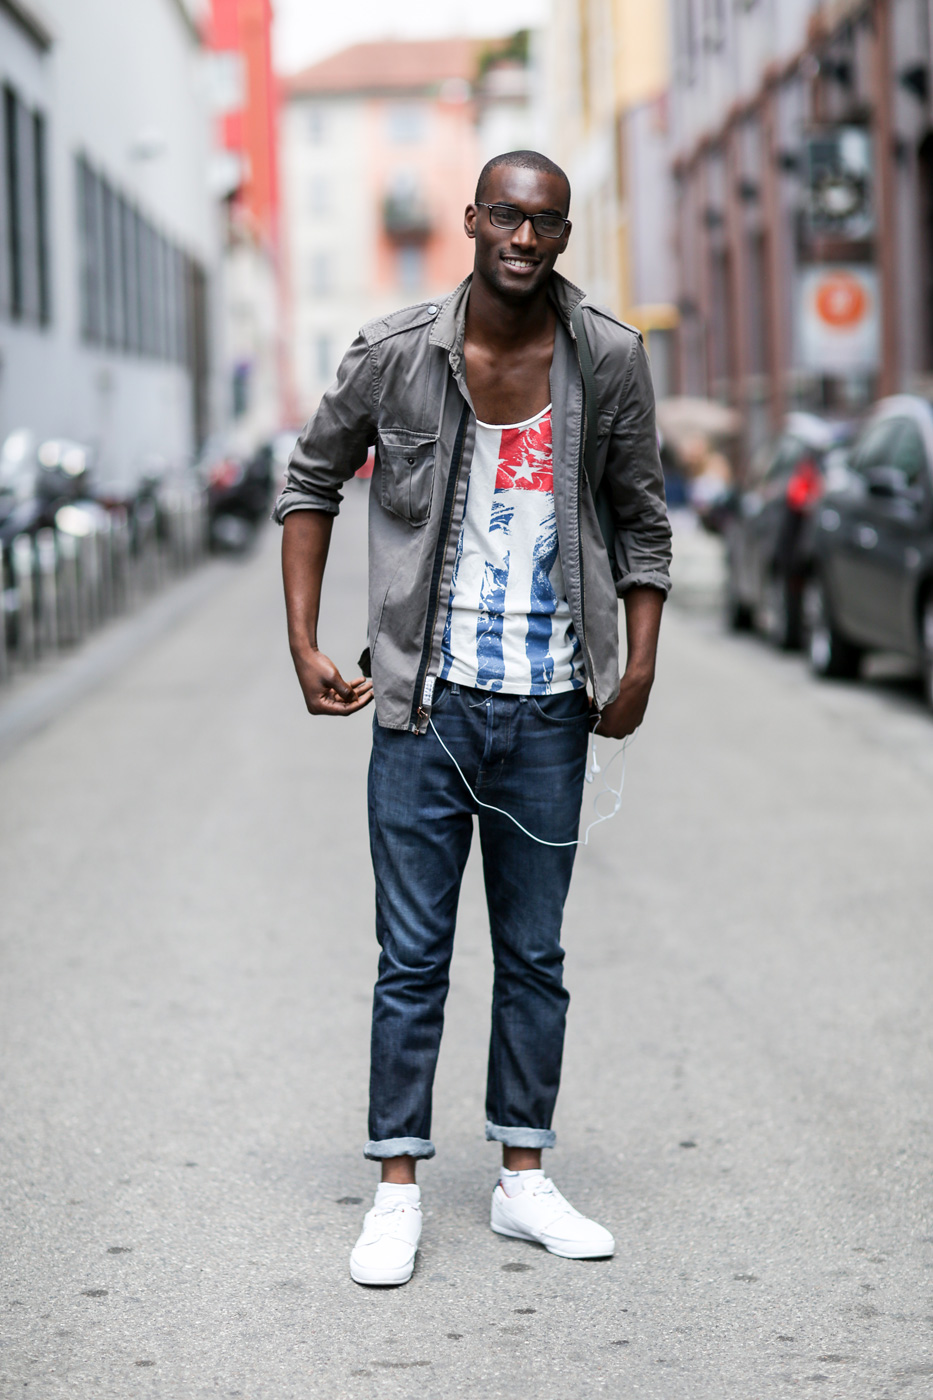 Mens Street Style Fashion 2015 Life In Kenia By Sandra